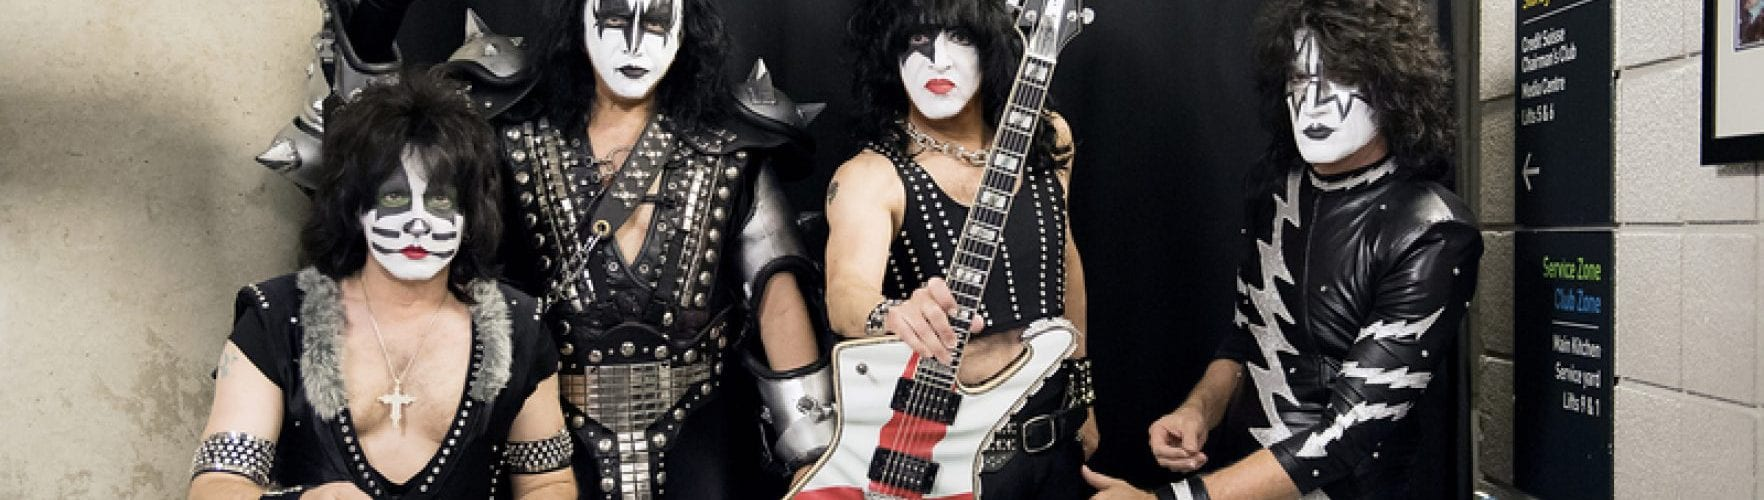 Kiss Joins AFC, NFC Games On Tuesday Best-Sellers